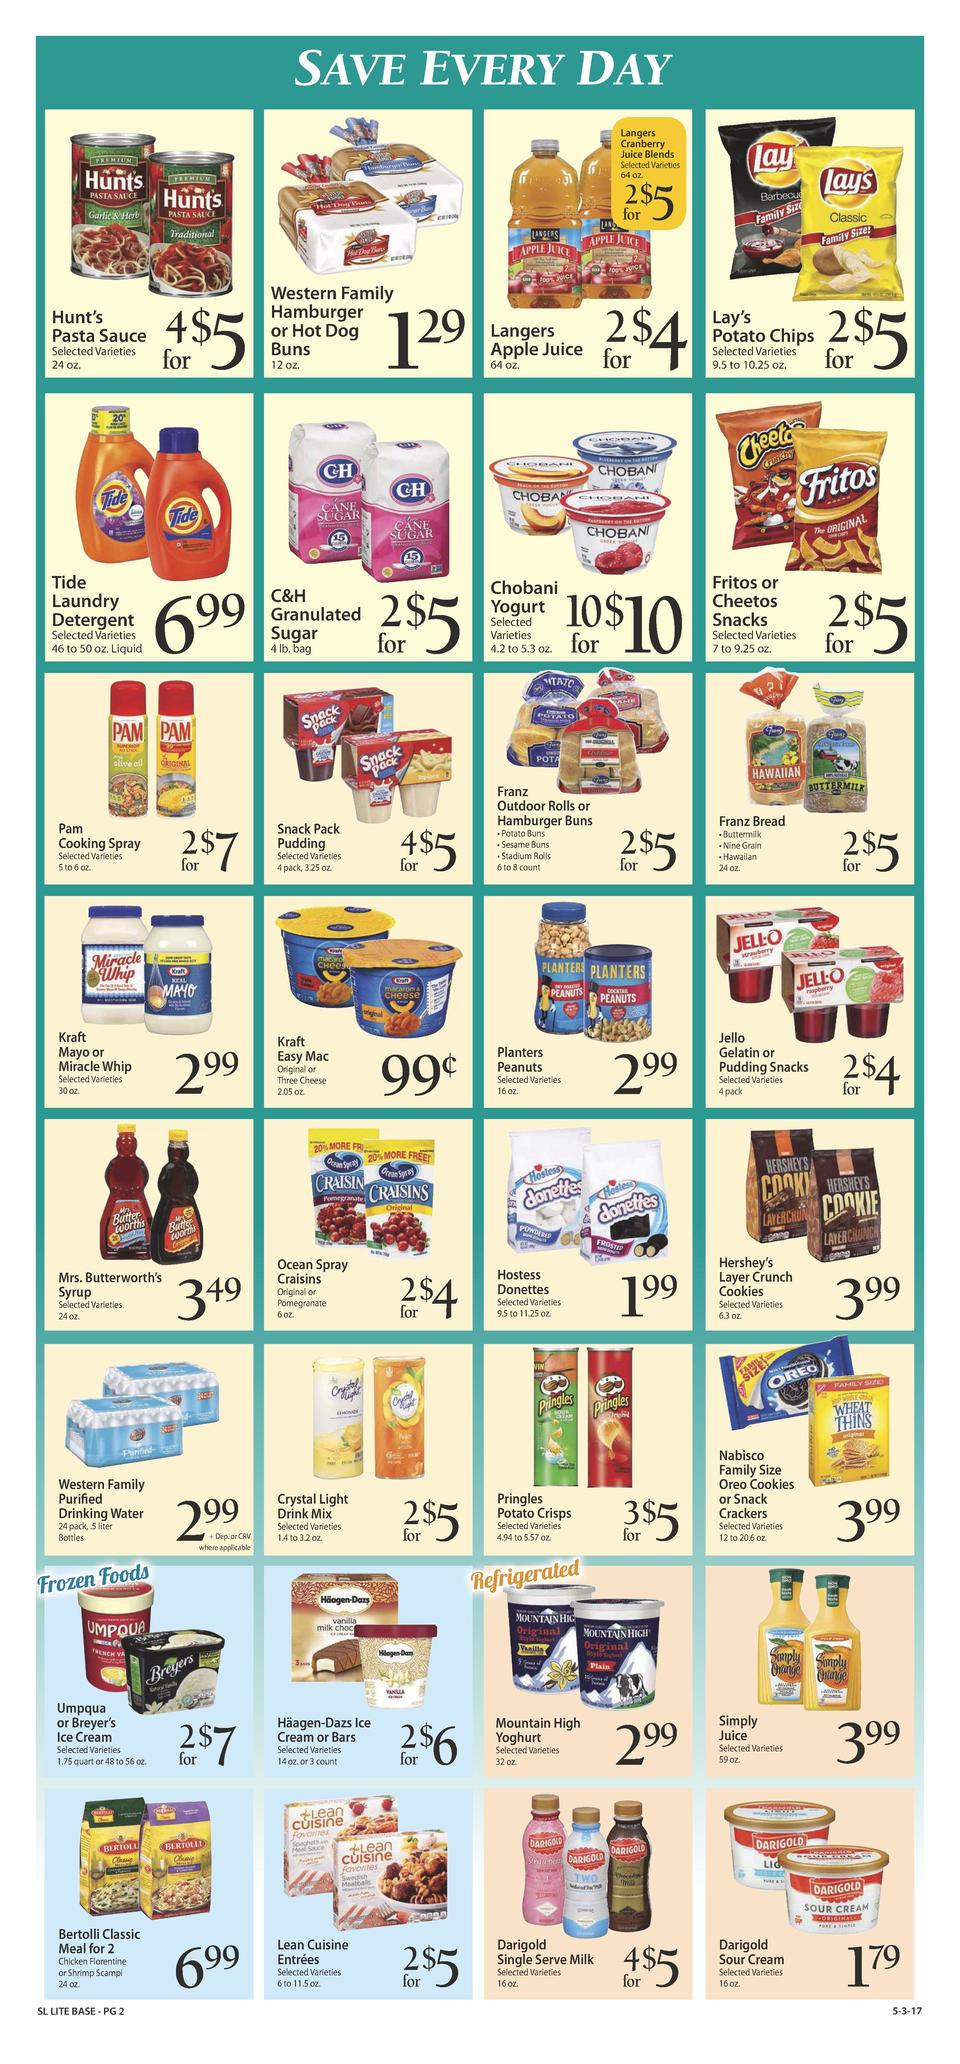 SAVE EVERY DAY Langers Cranberry Juice Blends  Selected Varieties 64 oz.  5  2   for  Selected Varieties 24 oz.  Tide Laun...